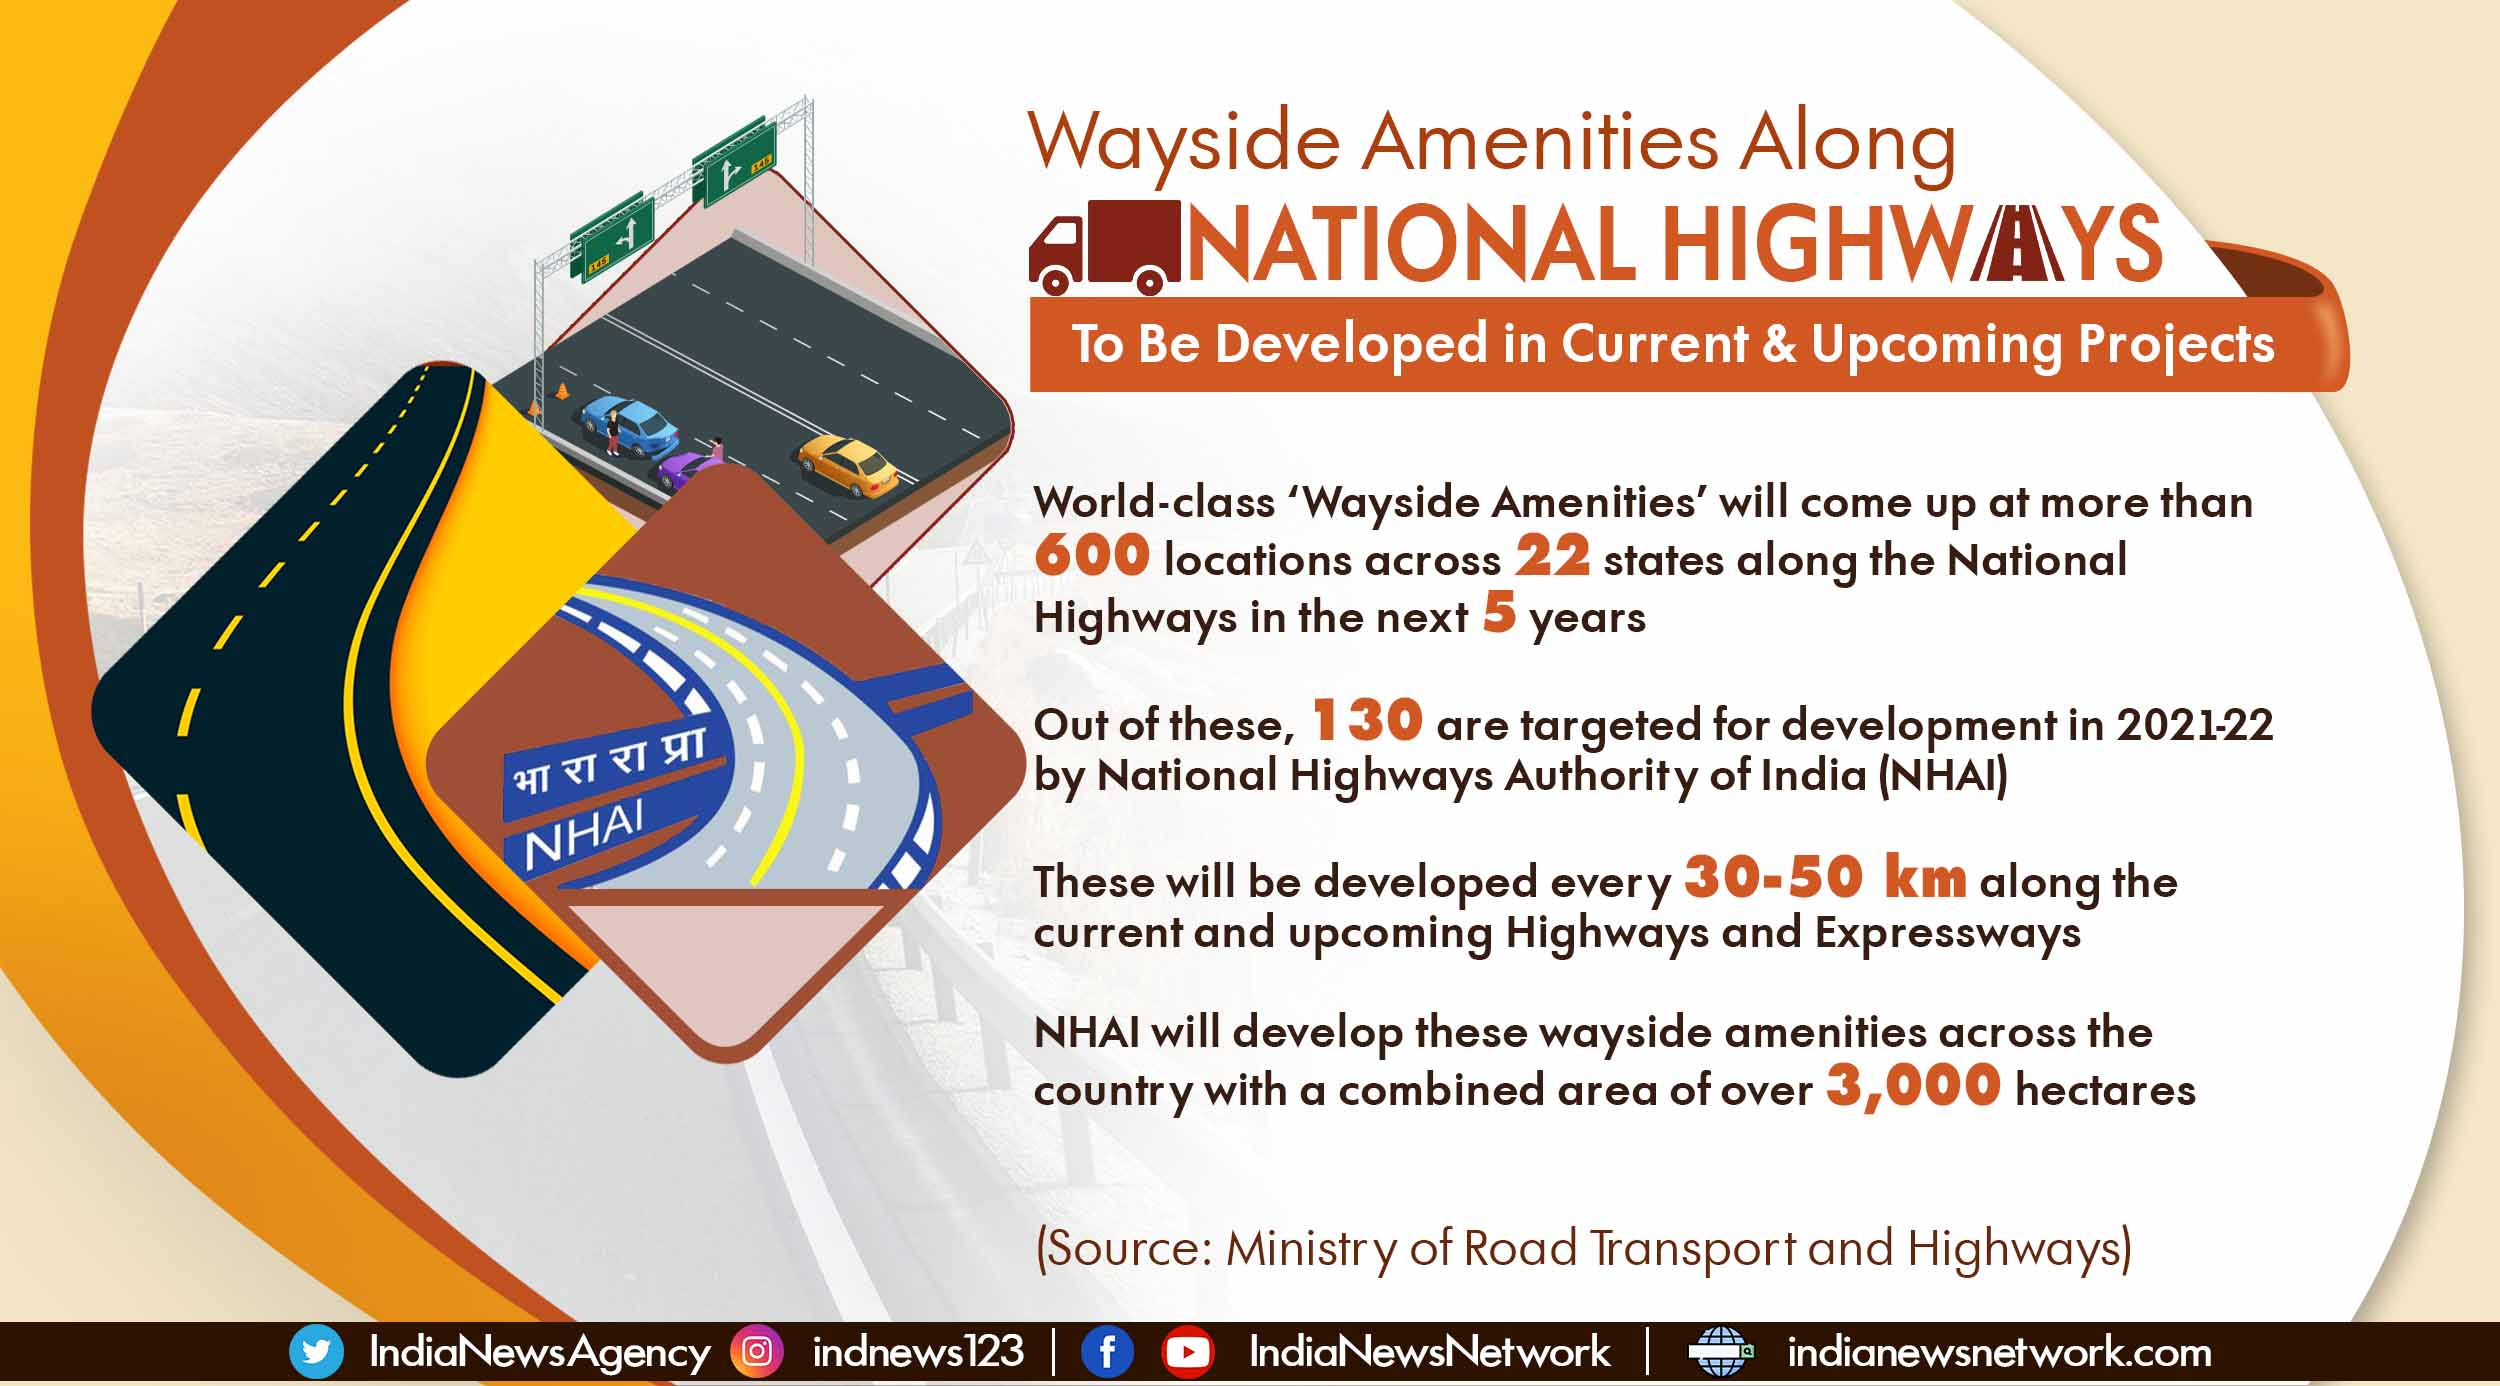 Over 600 'Wayside Amenities' to be developed along National Highways